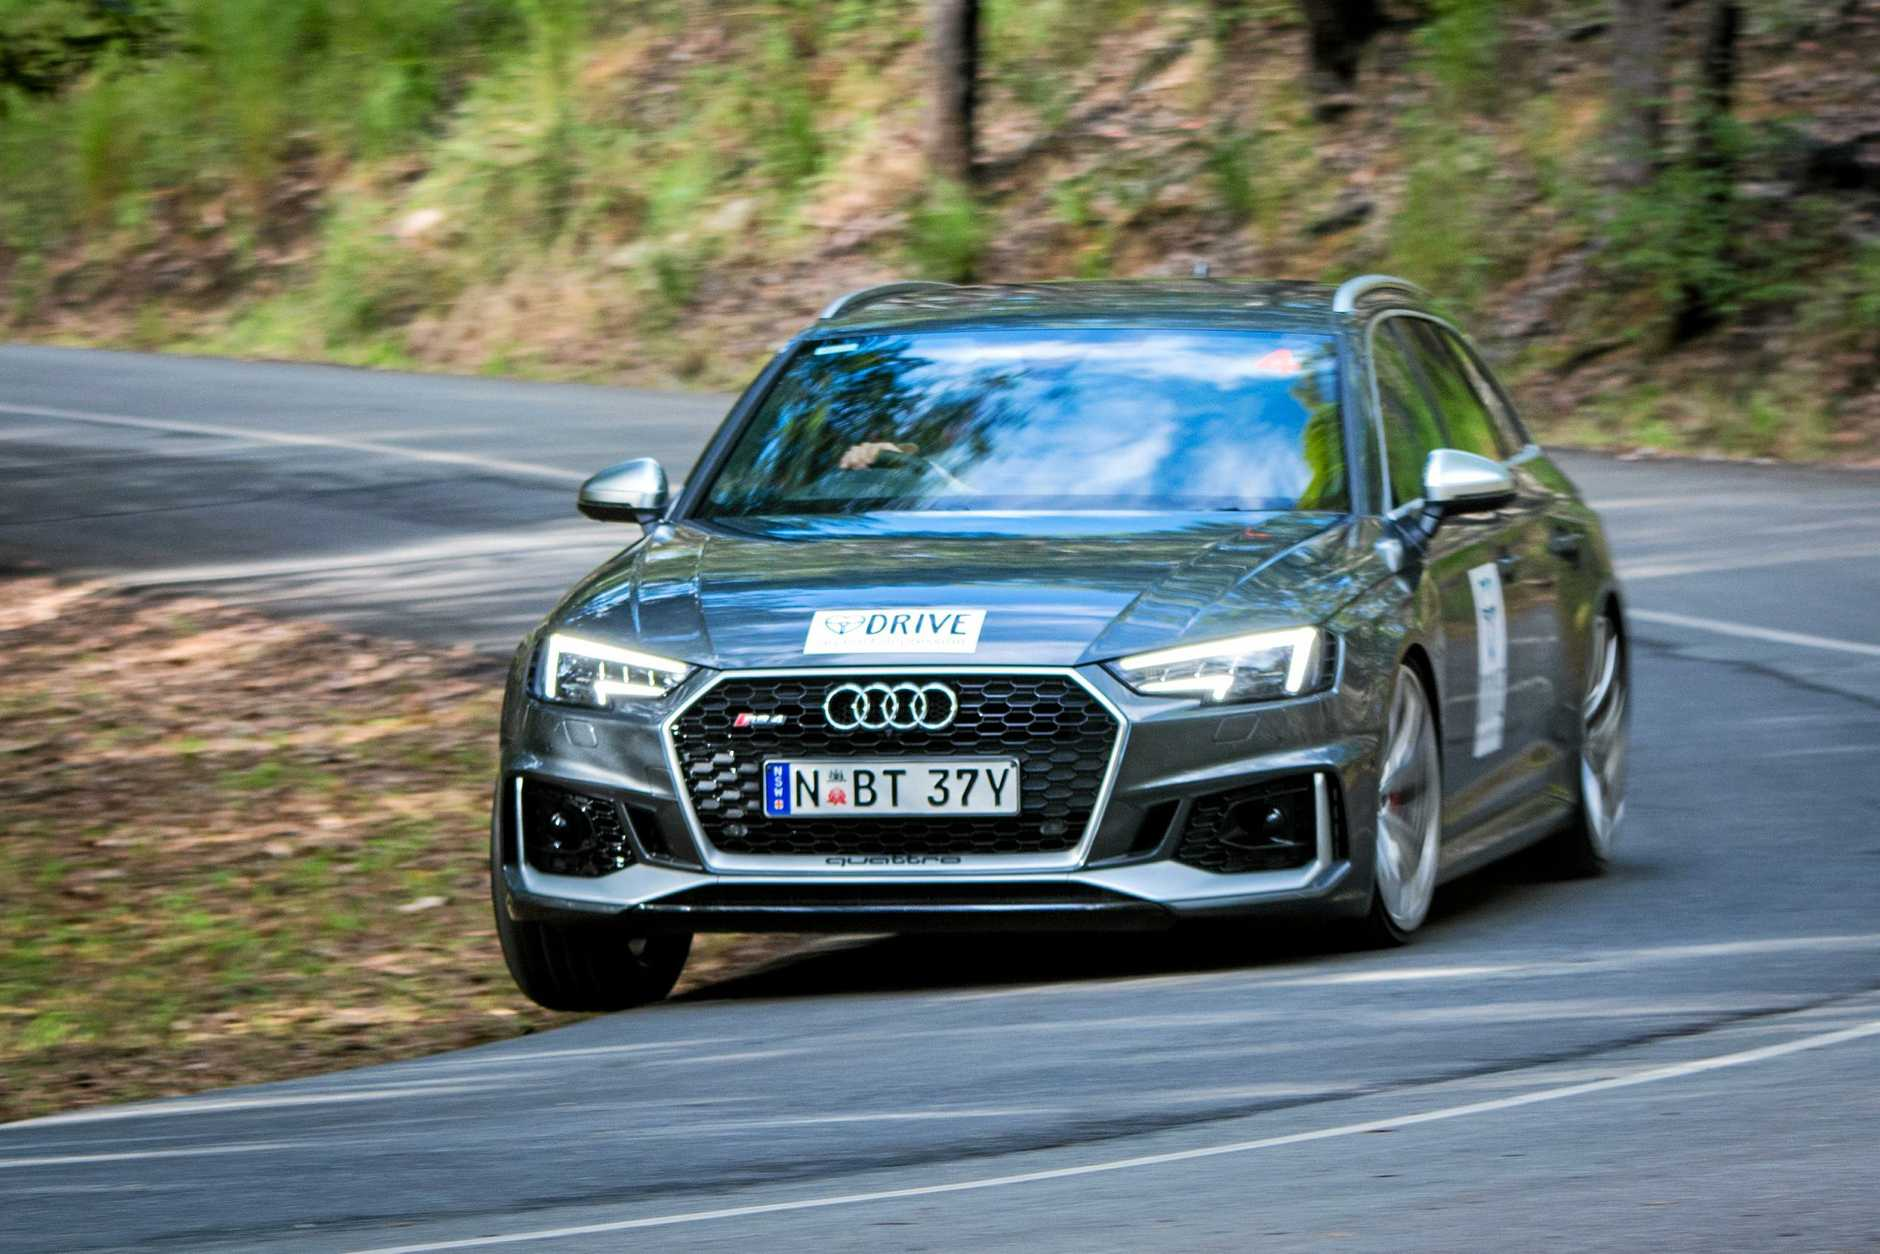 2017 Bathurst 1000 champion Luke Youlden tackles the Noosa Hill Climb in a 2018 Audi RS4 Avant.